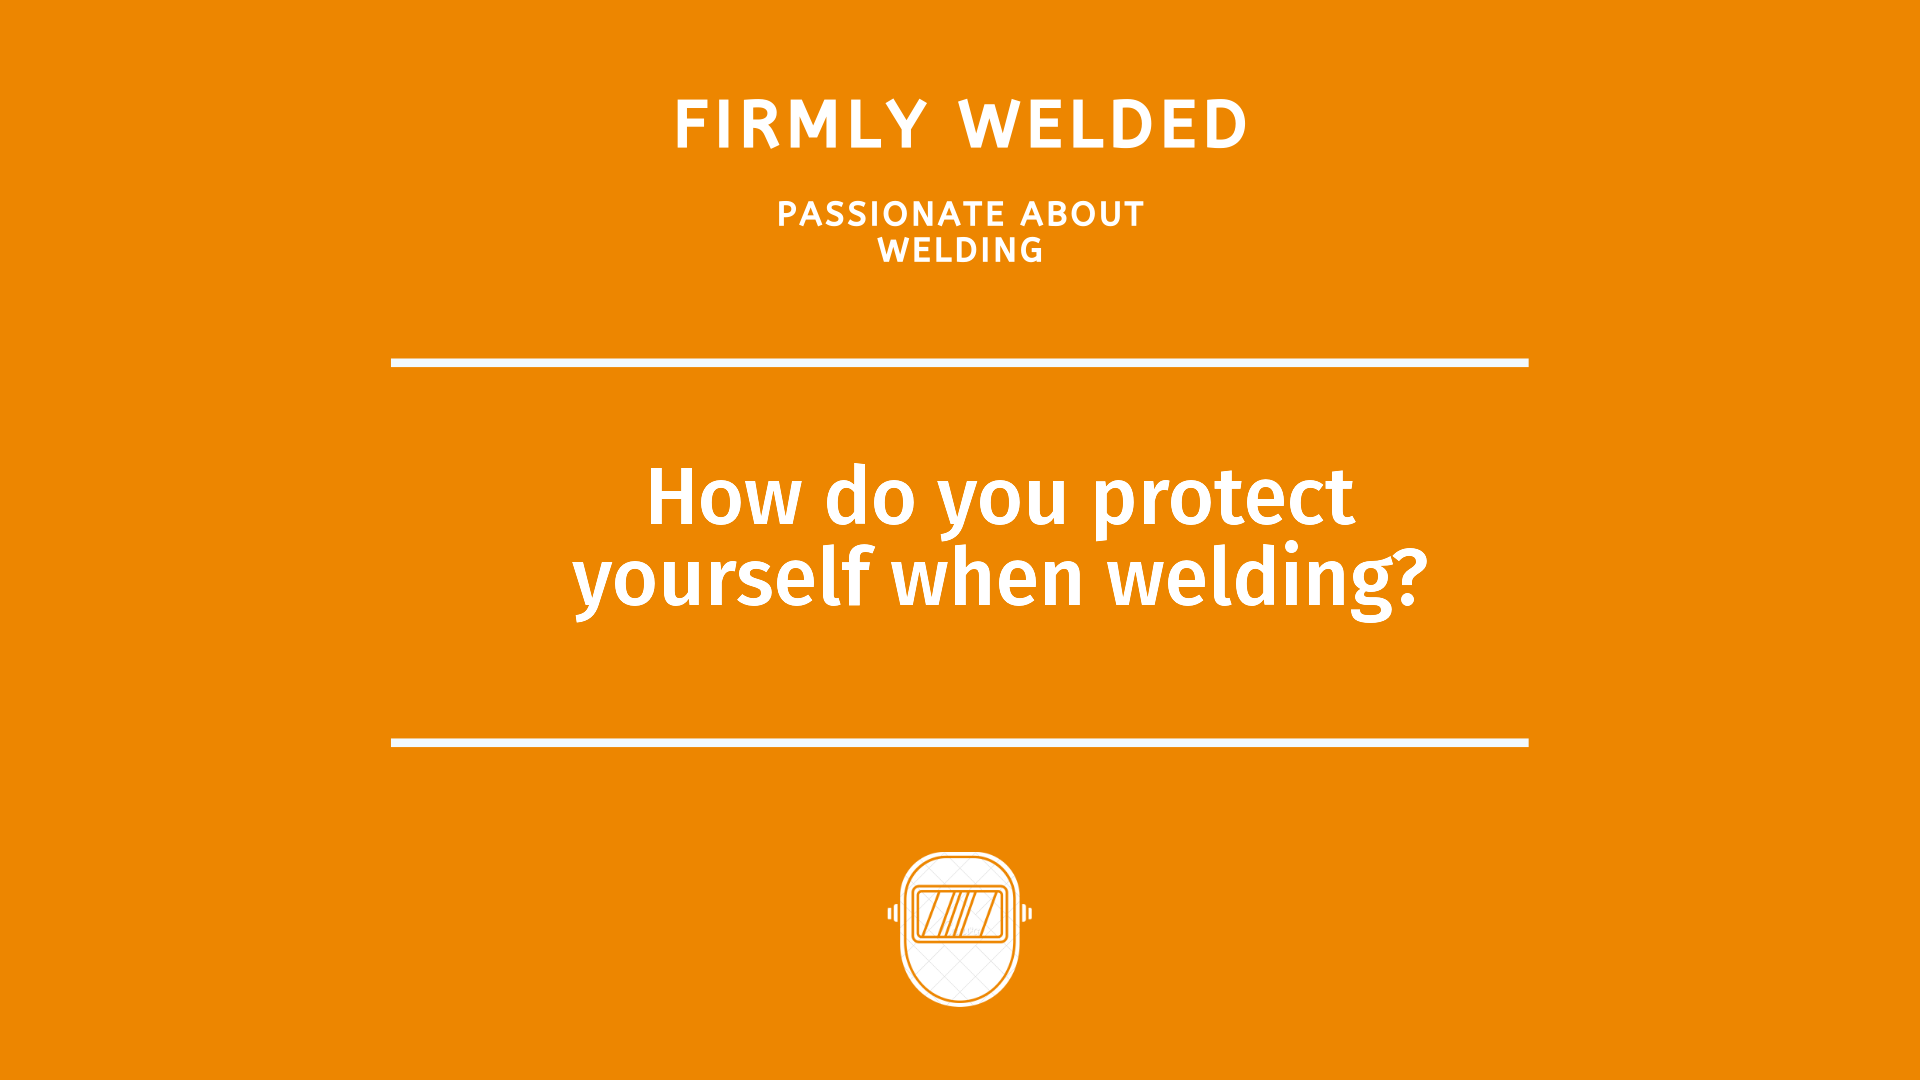 How do you protect yourself when welding?